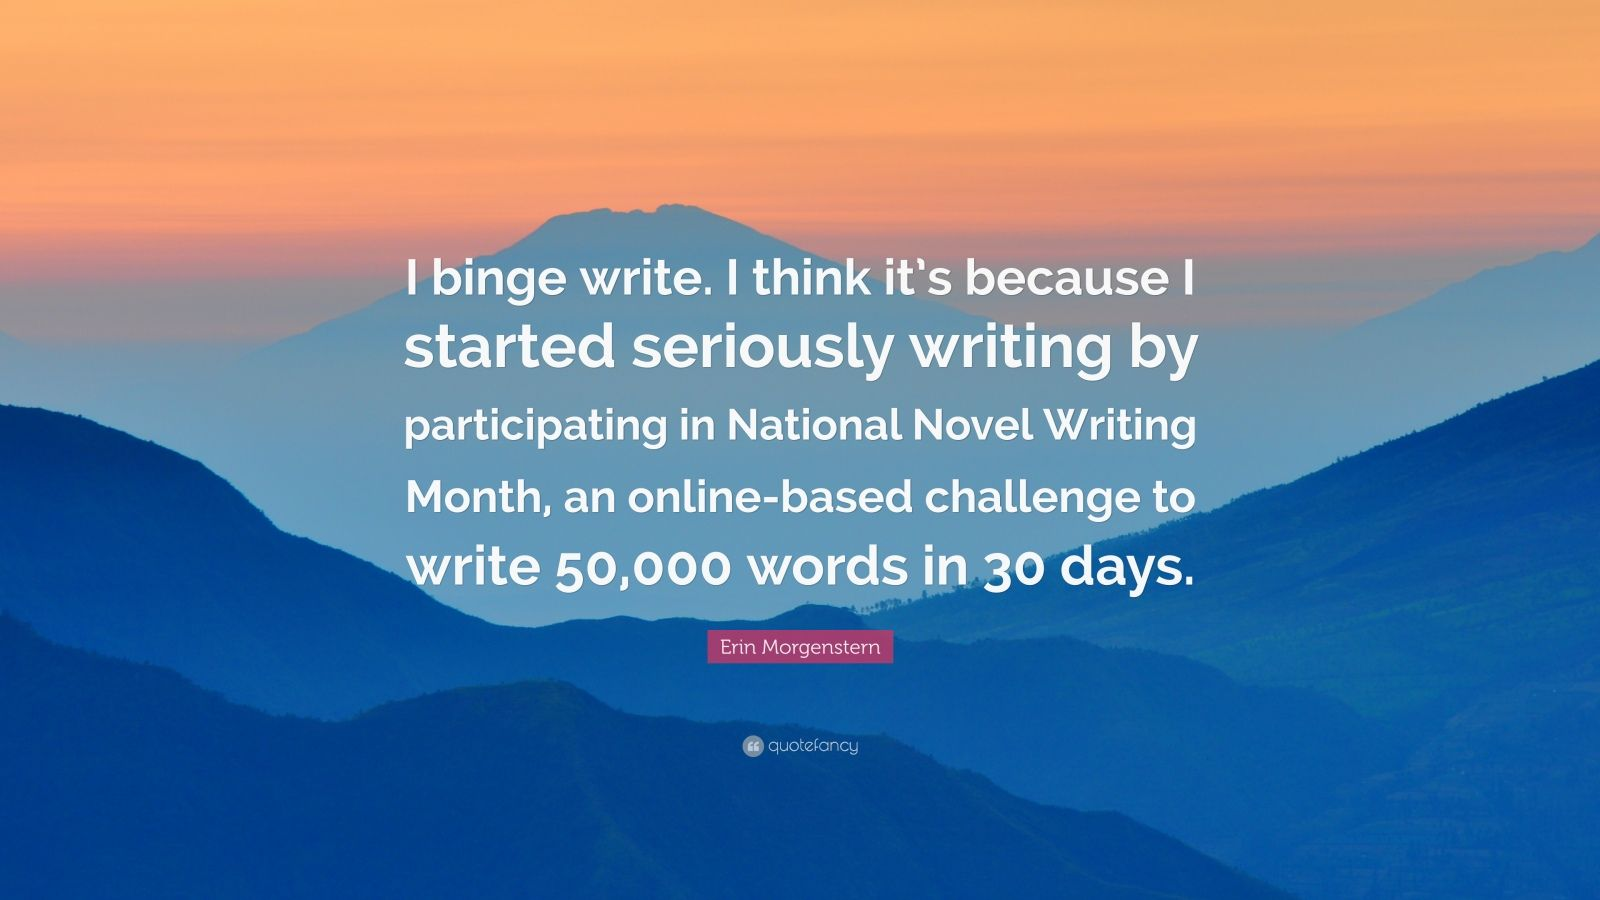 """Erin Morgenstern Quote: """"I binge write. I think it's because I started seriously writing by participating in National Novel Writing Month, an online-based challenge to write 50,000 words in 30 days."""""""